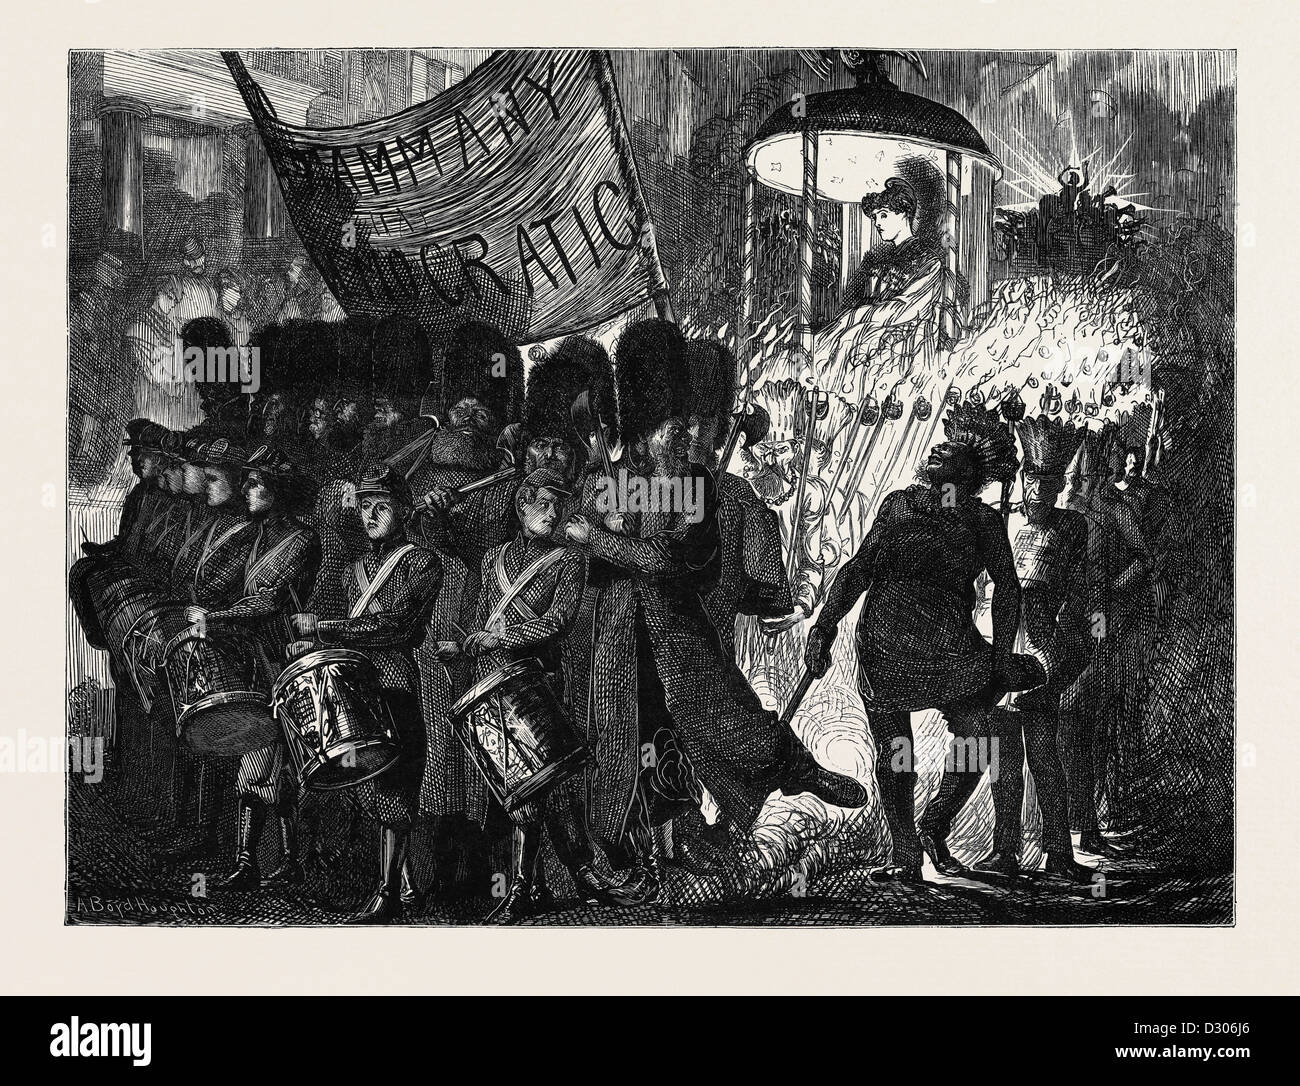 TAMMANY DEMOCRATIC PROCESSION IN NEW YORK, 1870 - Stock Image